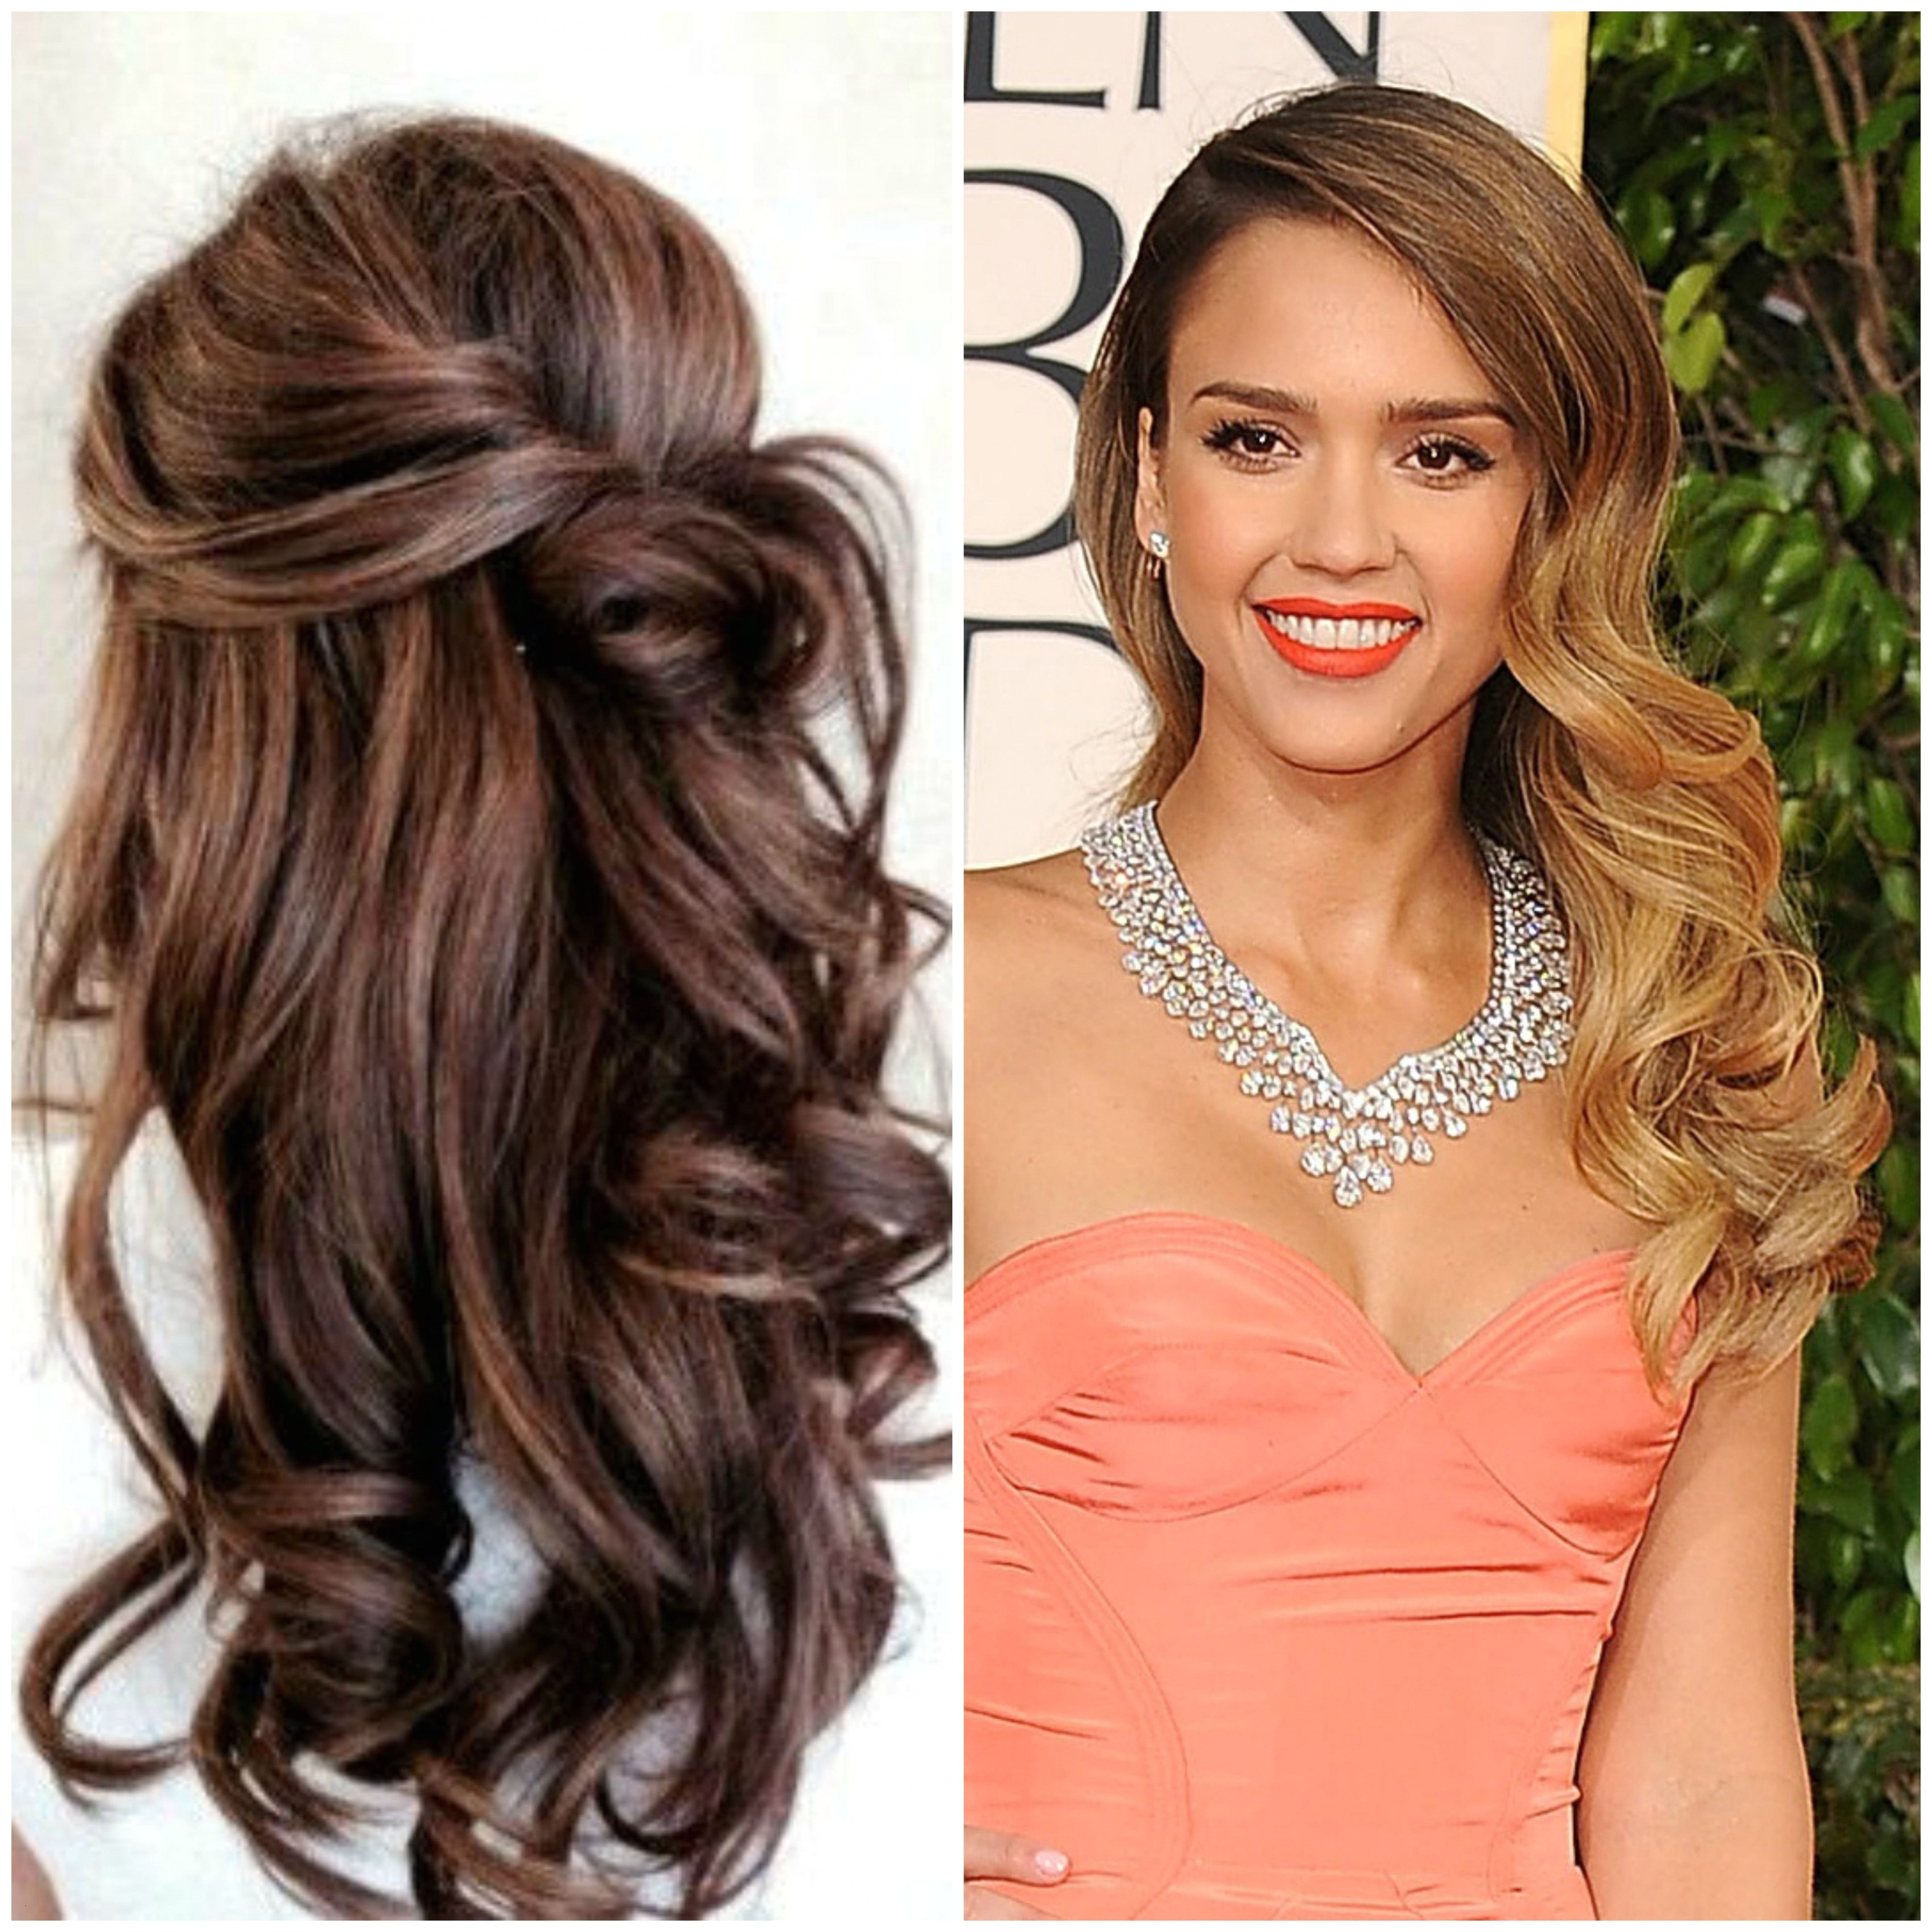 0d Improvestyle · Hairstyle For Girls Pic New Prom Hairstyles For Girls Pics Inspirational Haircuts For Girls